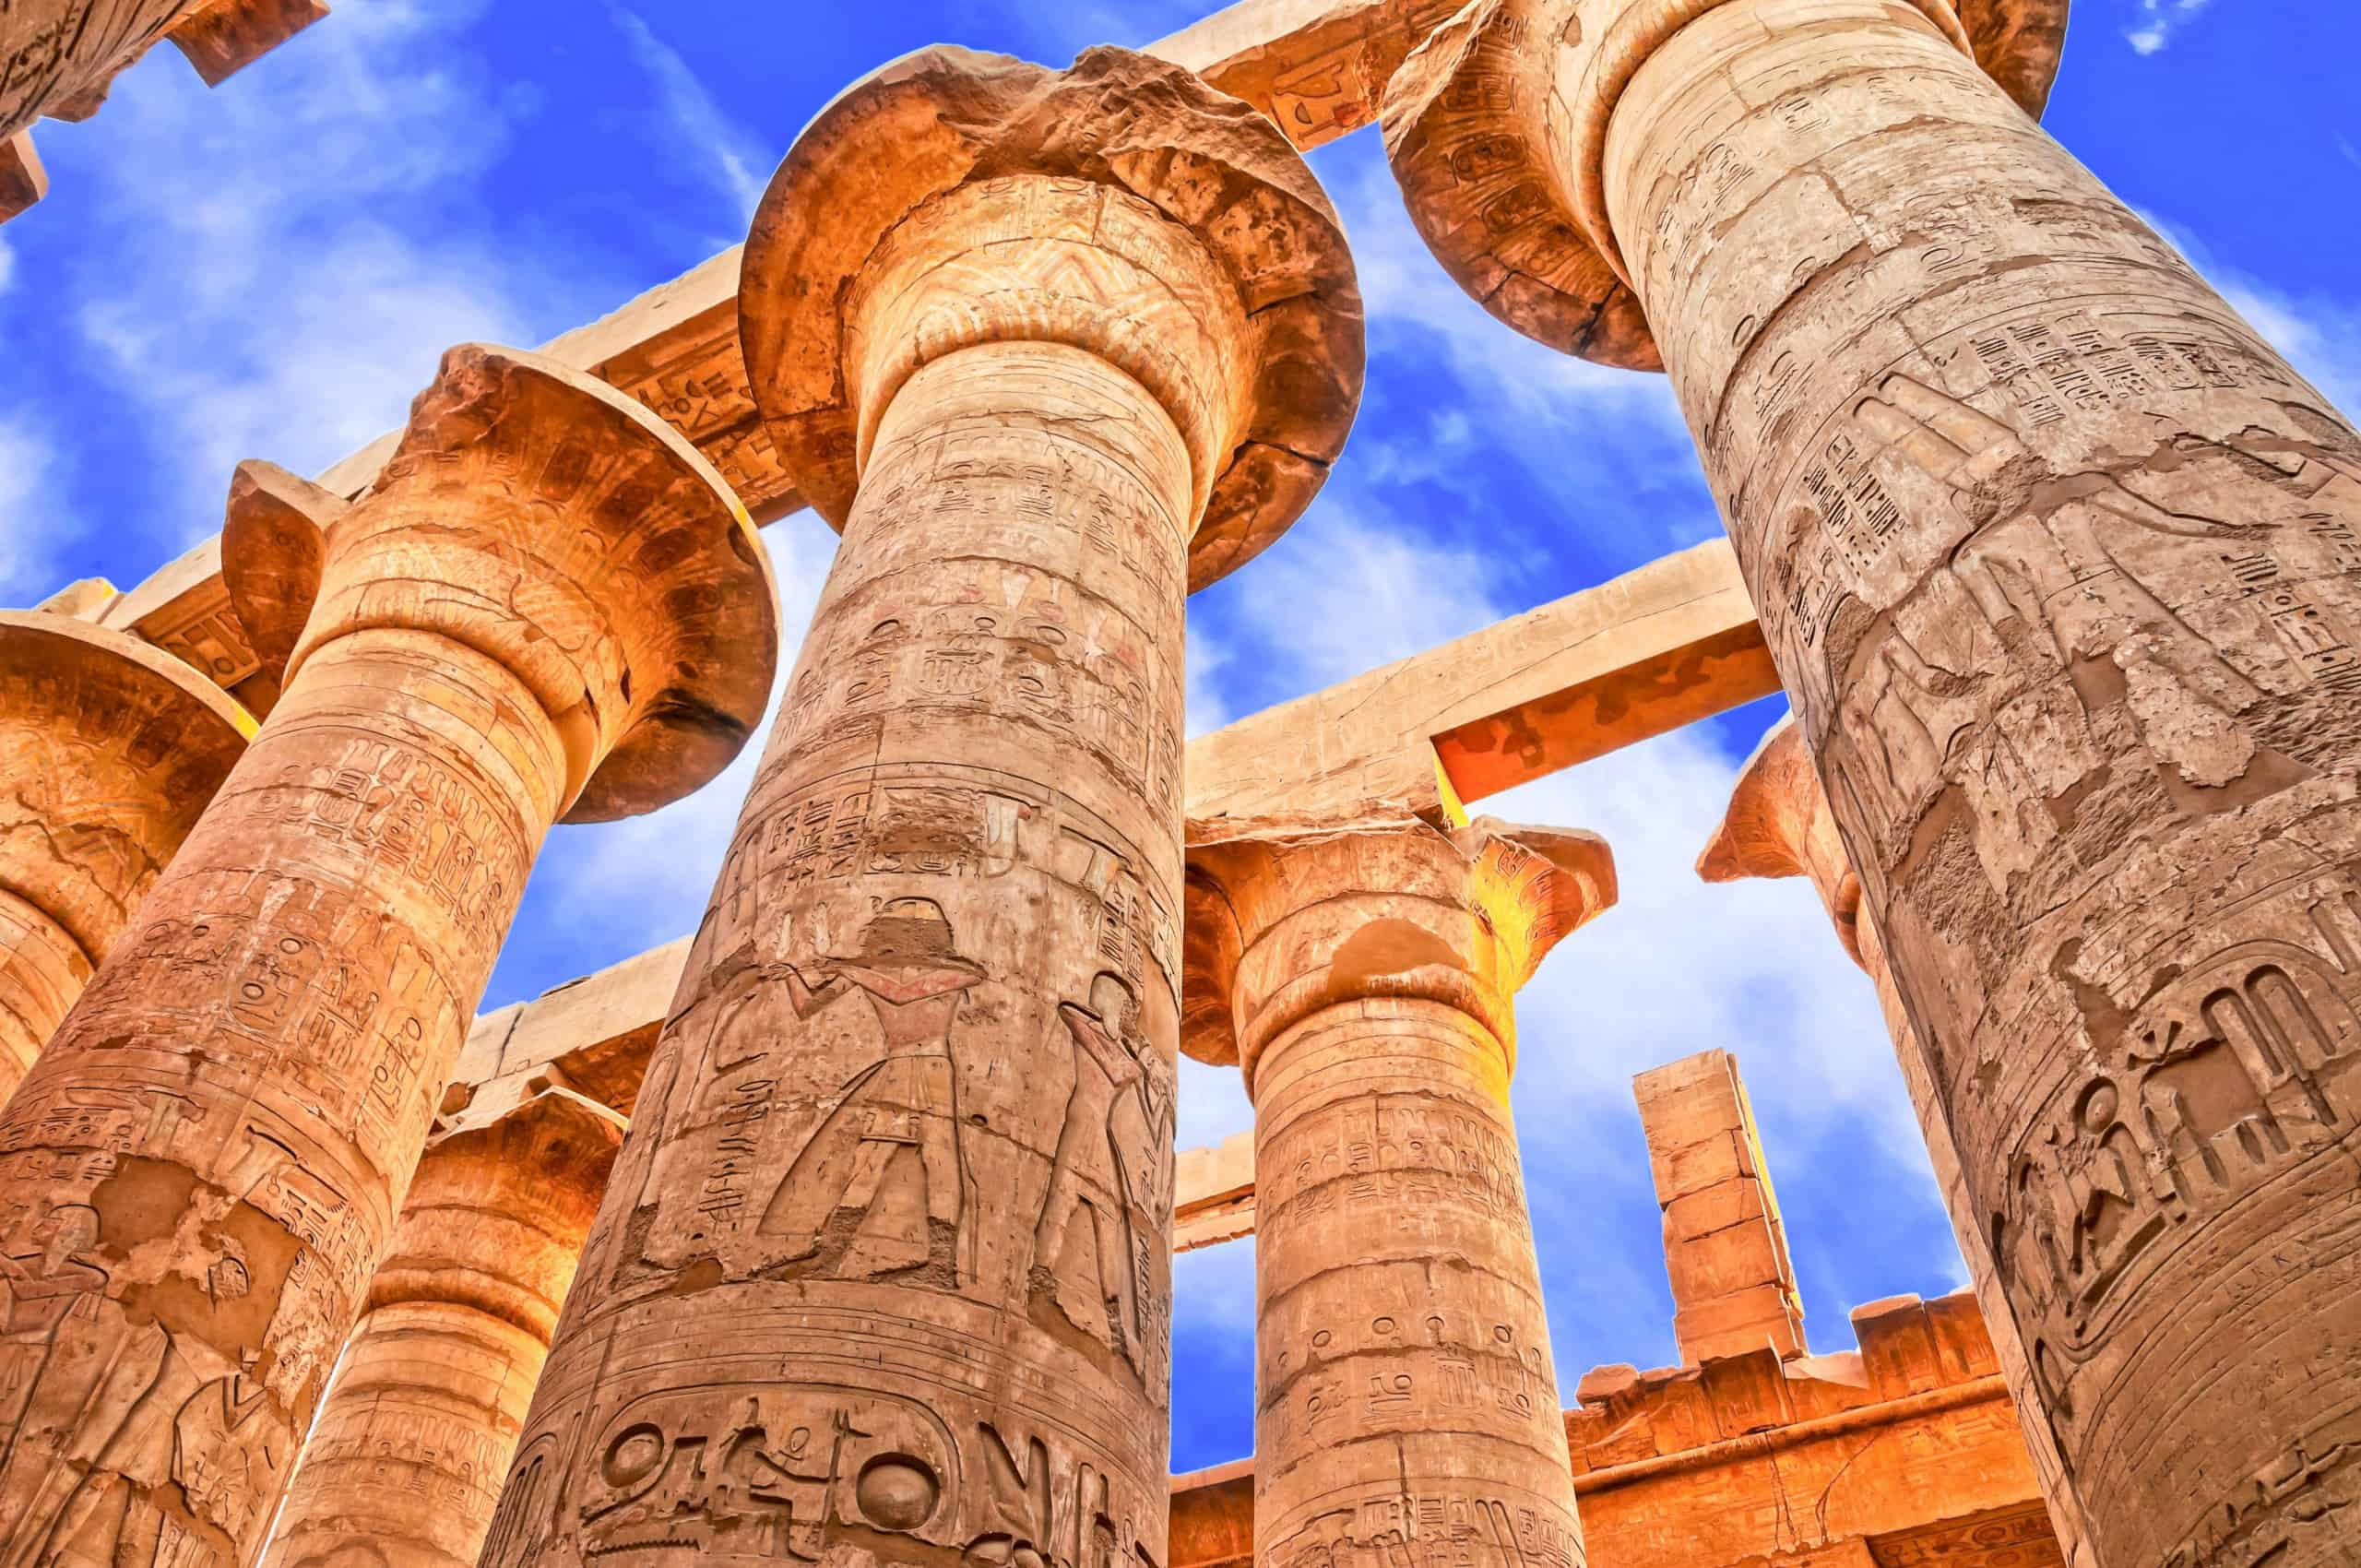 Great Hypostyle Hall and clouds at the Temples of Karnak (ancient Thebes). Luxor, Egypt